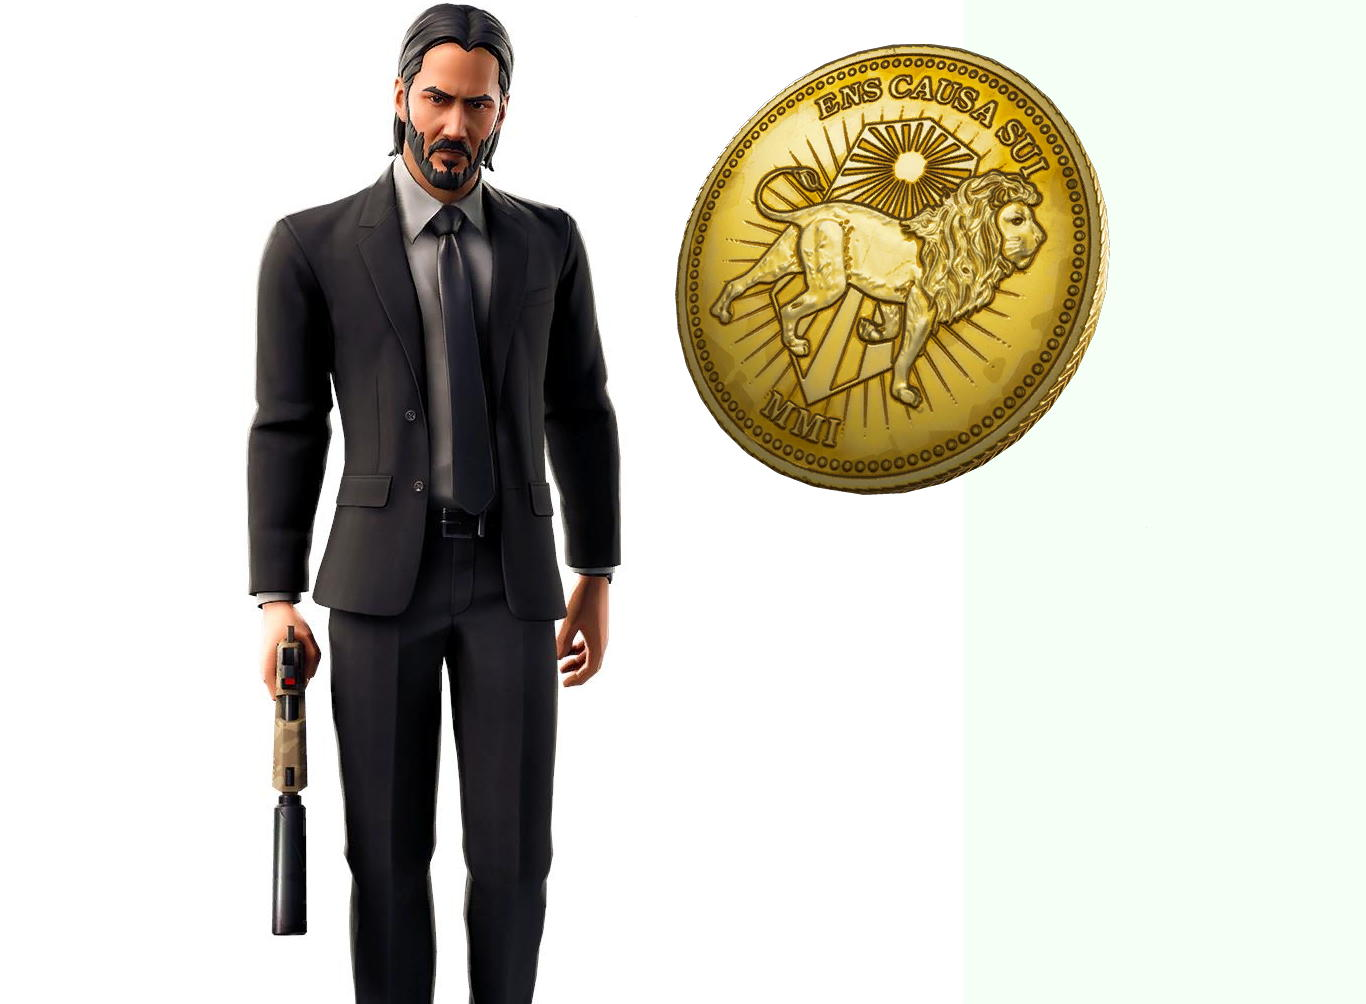 Here's the John Wick skin coming soon to Fortnite